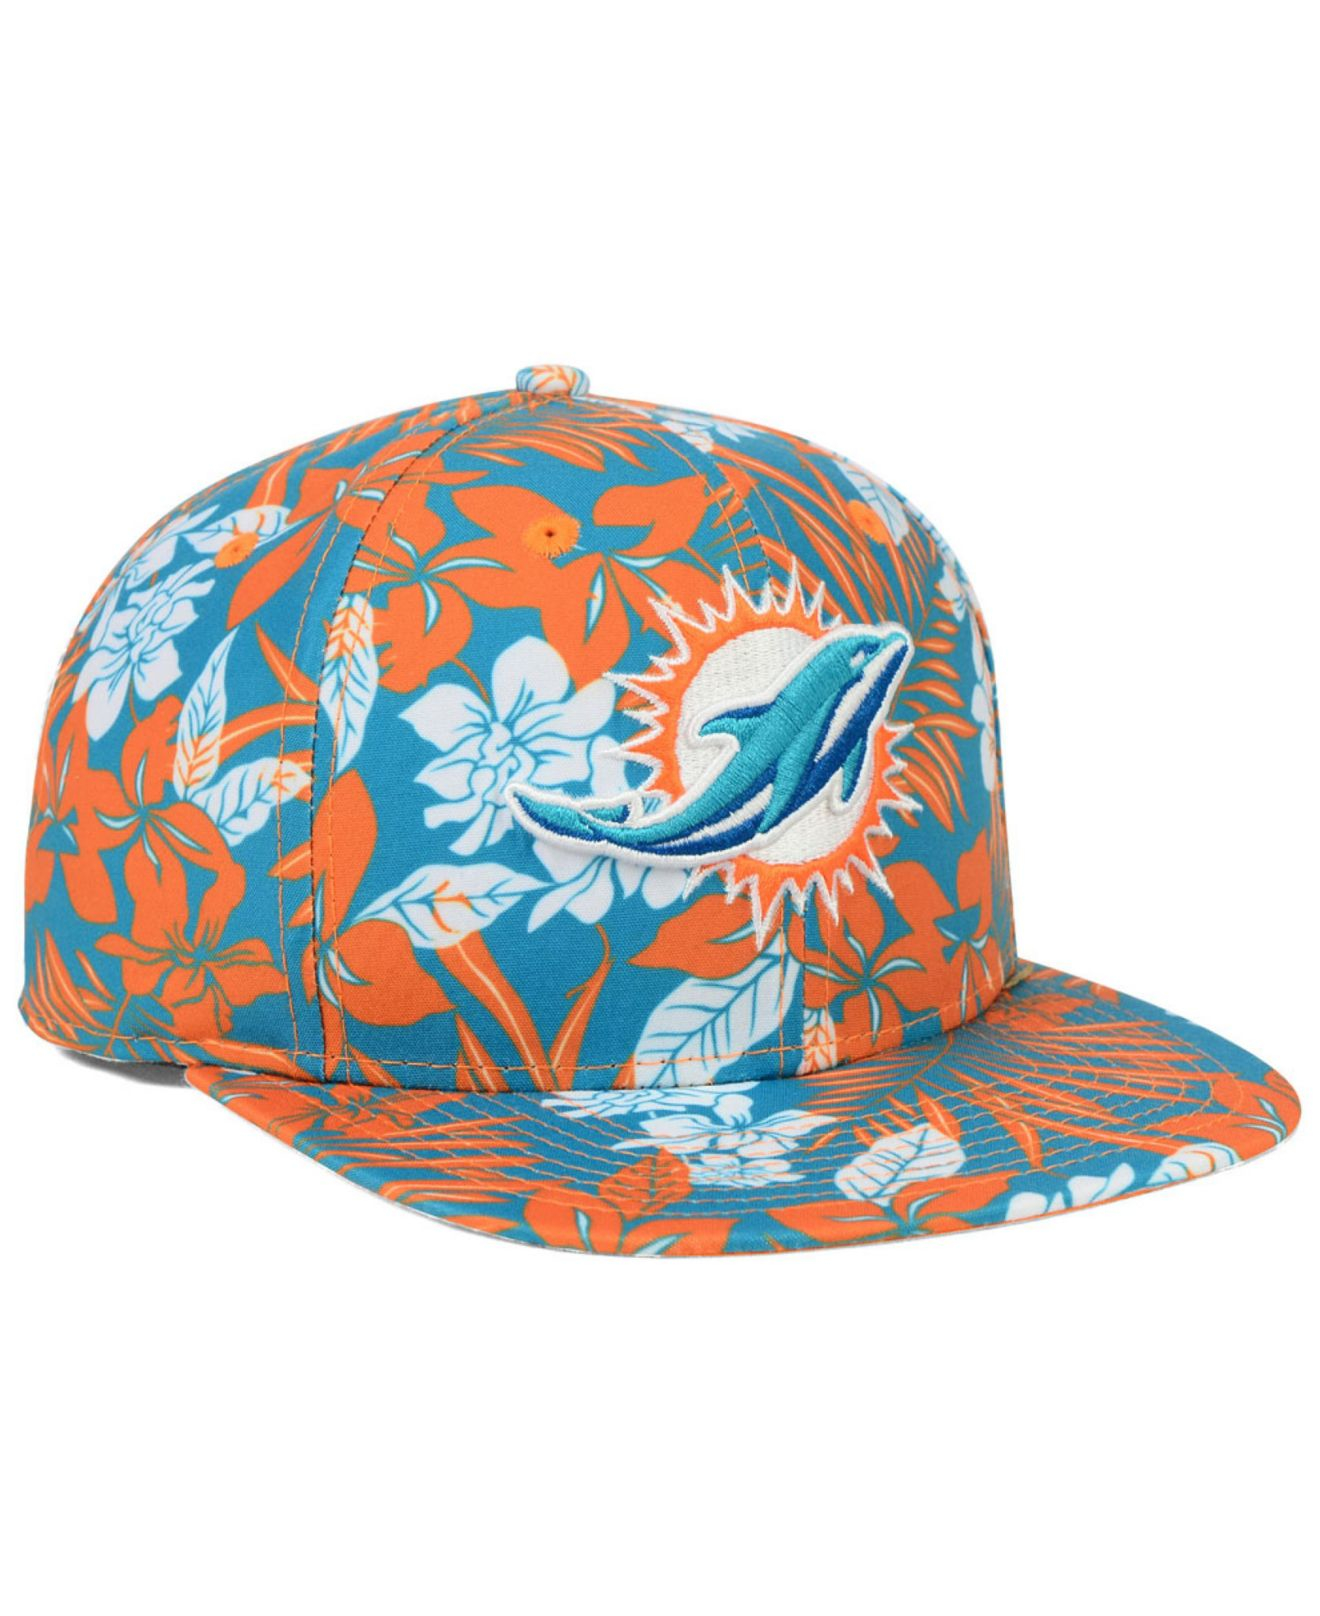 on sale 7ee9f ba27a ... denmark lyst ktz miami dolphins wowie snapback cap in blue for men  bd7a2 455bc